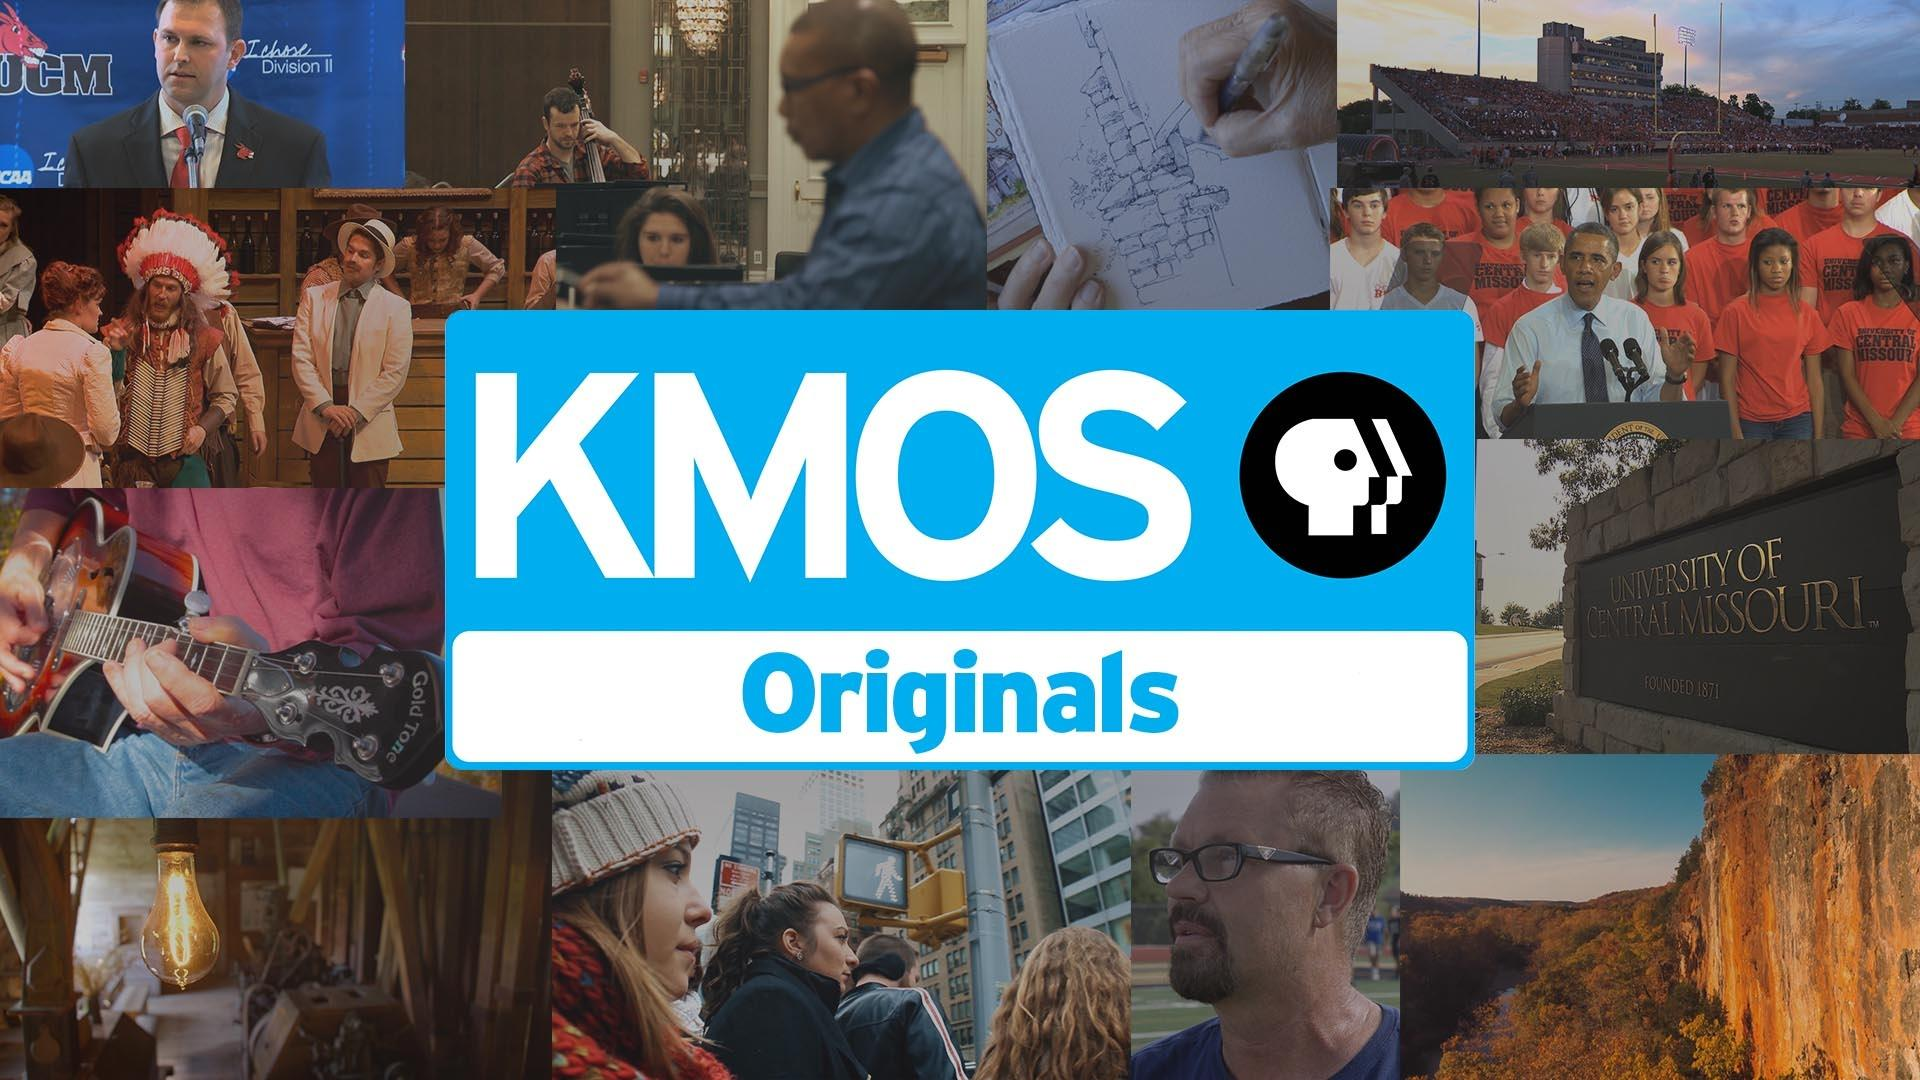 KMOS-TV Originals